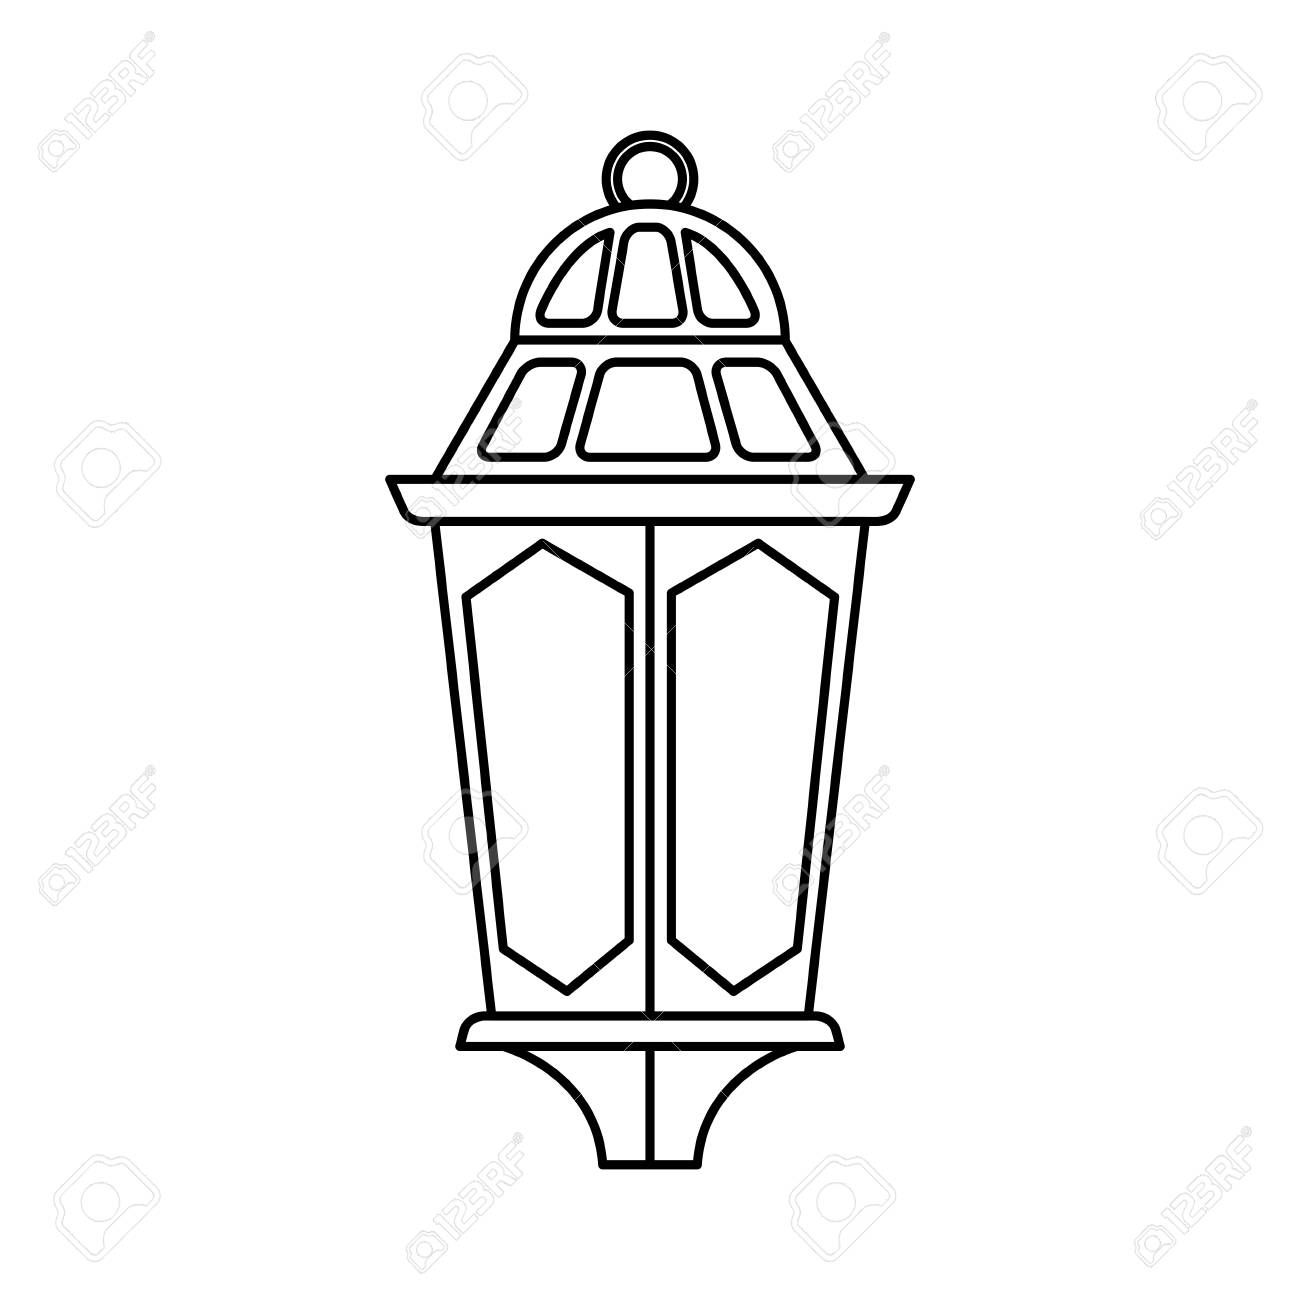 Ramadam Karem Lamp Hanging Vector Illustration Design Royalty Free Cliparts Vectors And St In 2020 Vector Illustration Design Illustration Design Vector Illustration